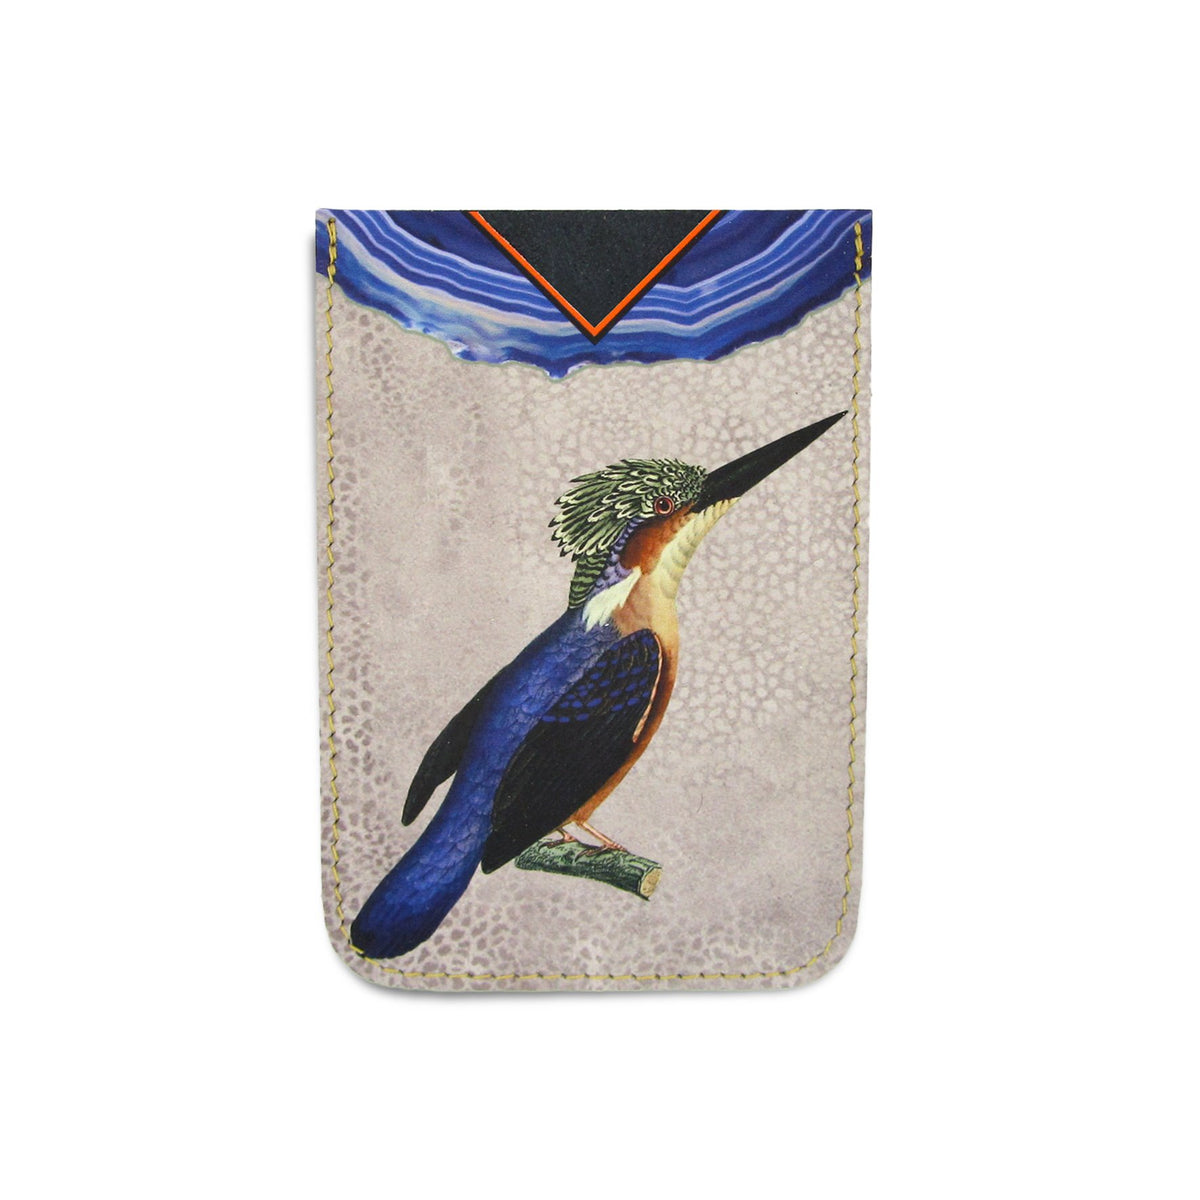 Leather Card Holder / Phone Sticker Wallet Pocket - Kingfisher Wallet Tovi Sorga Standard Card Holder Without personalisation Blue